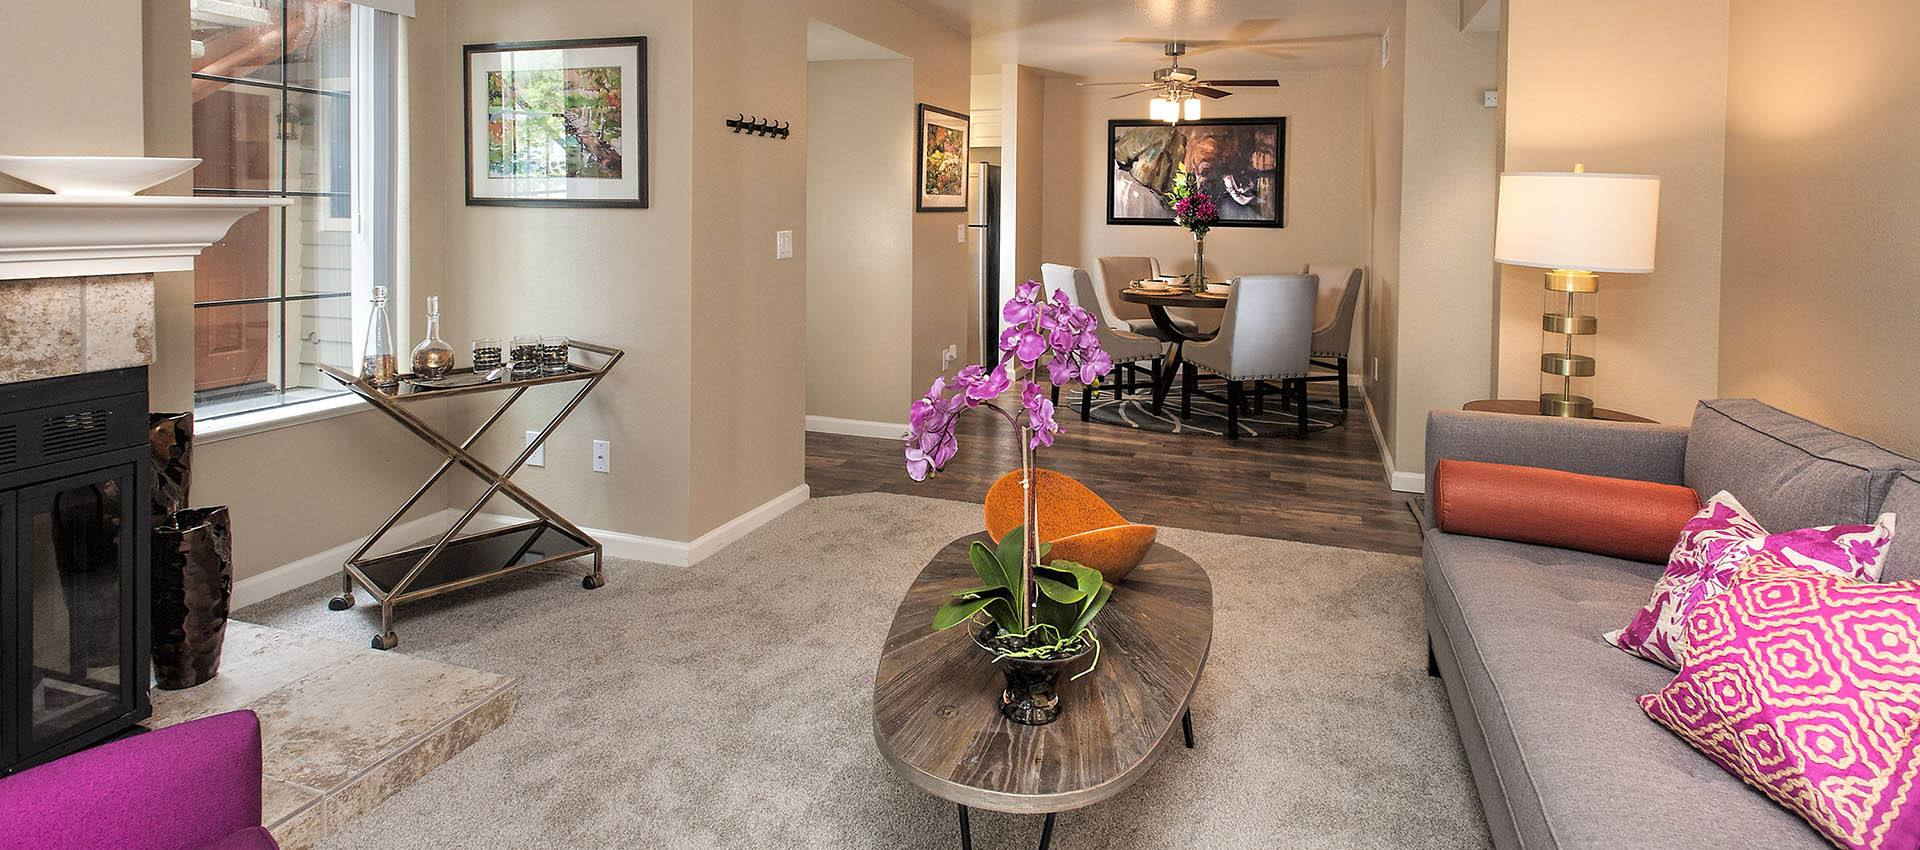 Spacious Lving Room With Bright Decorations at Hidden Lake Condominium Rentals in Sacramento, California